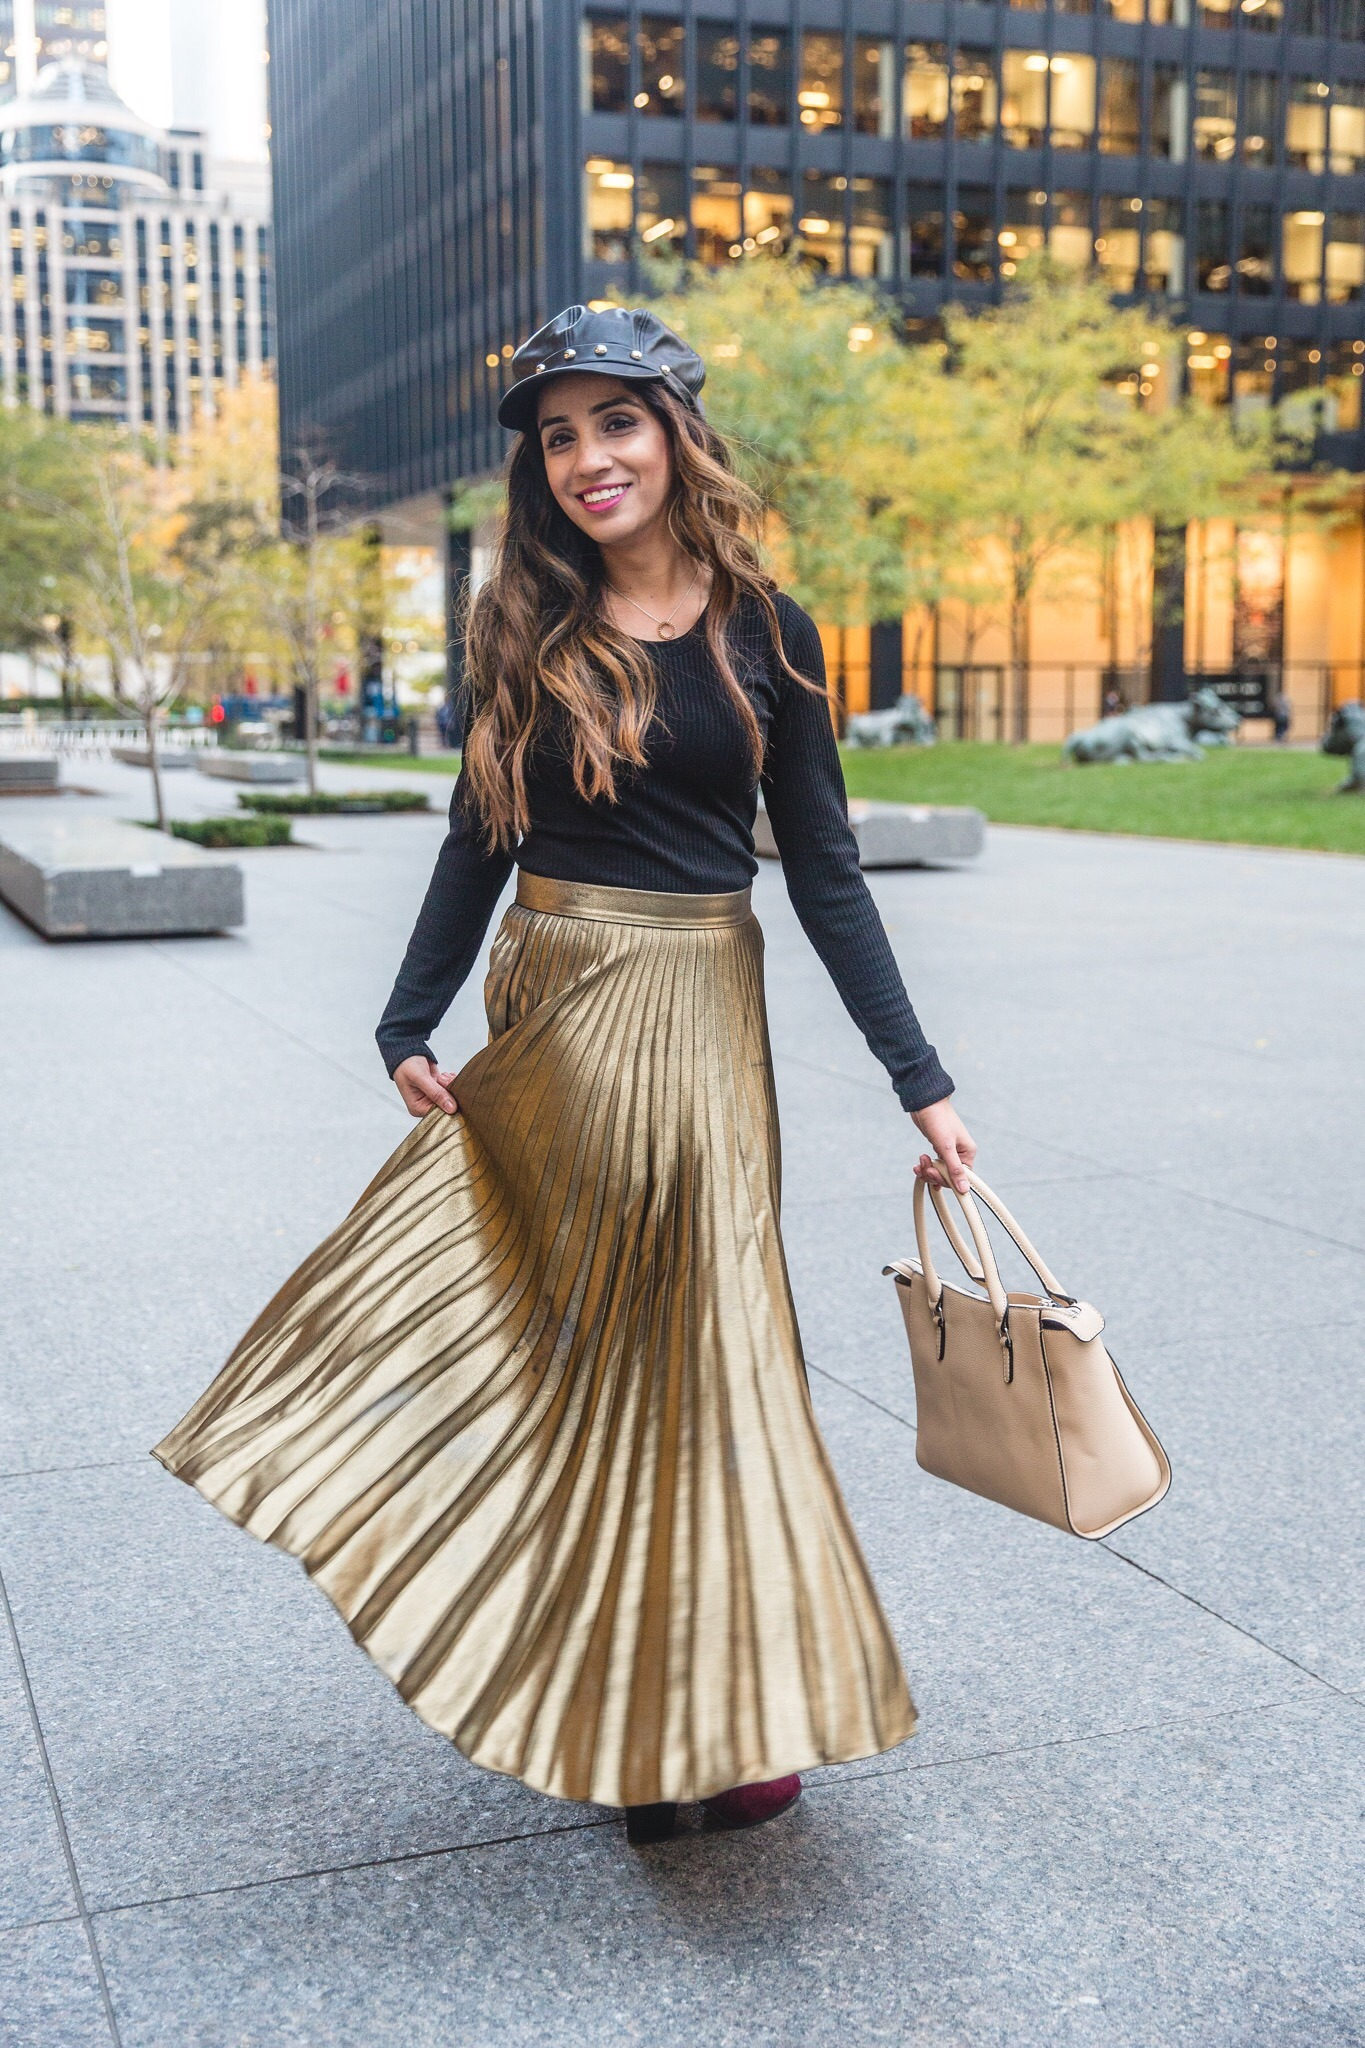 f1f3a910414c6 Golden pleated skirt and boots marciano skirt forever21 boots studded  bakerboy hat